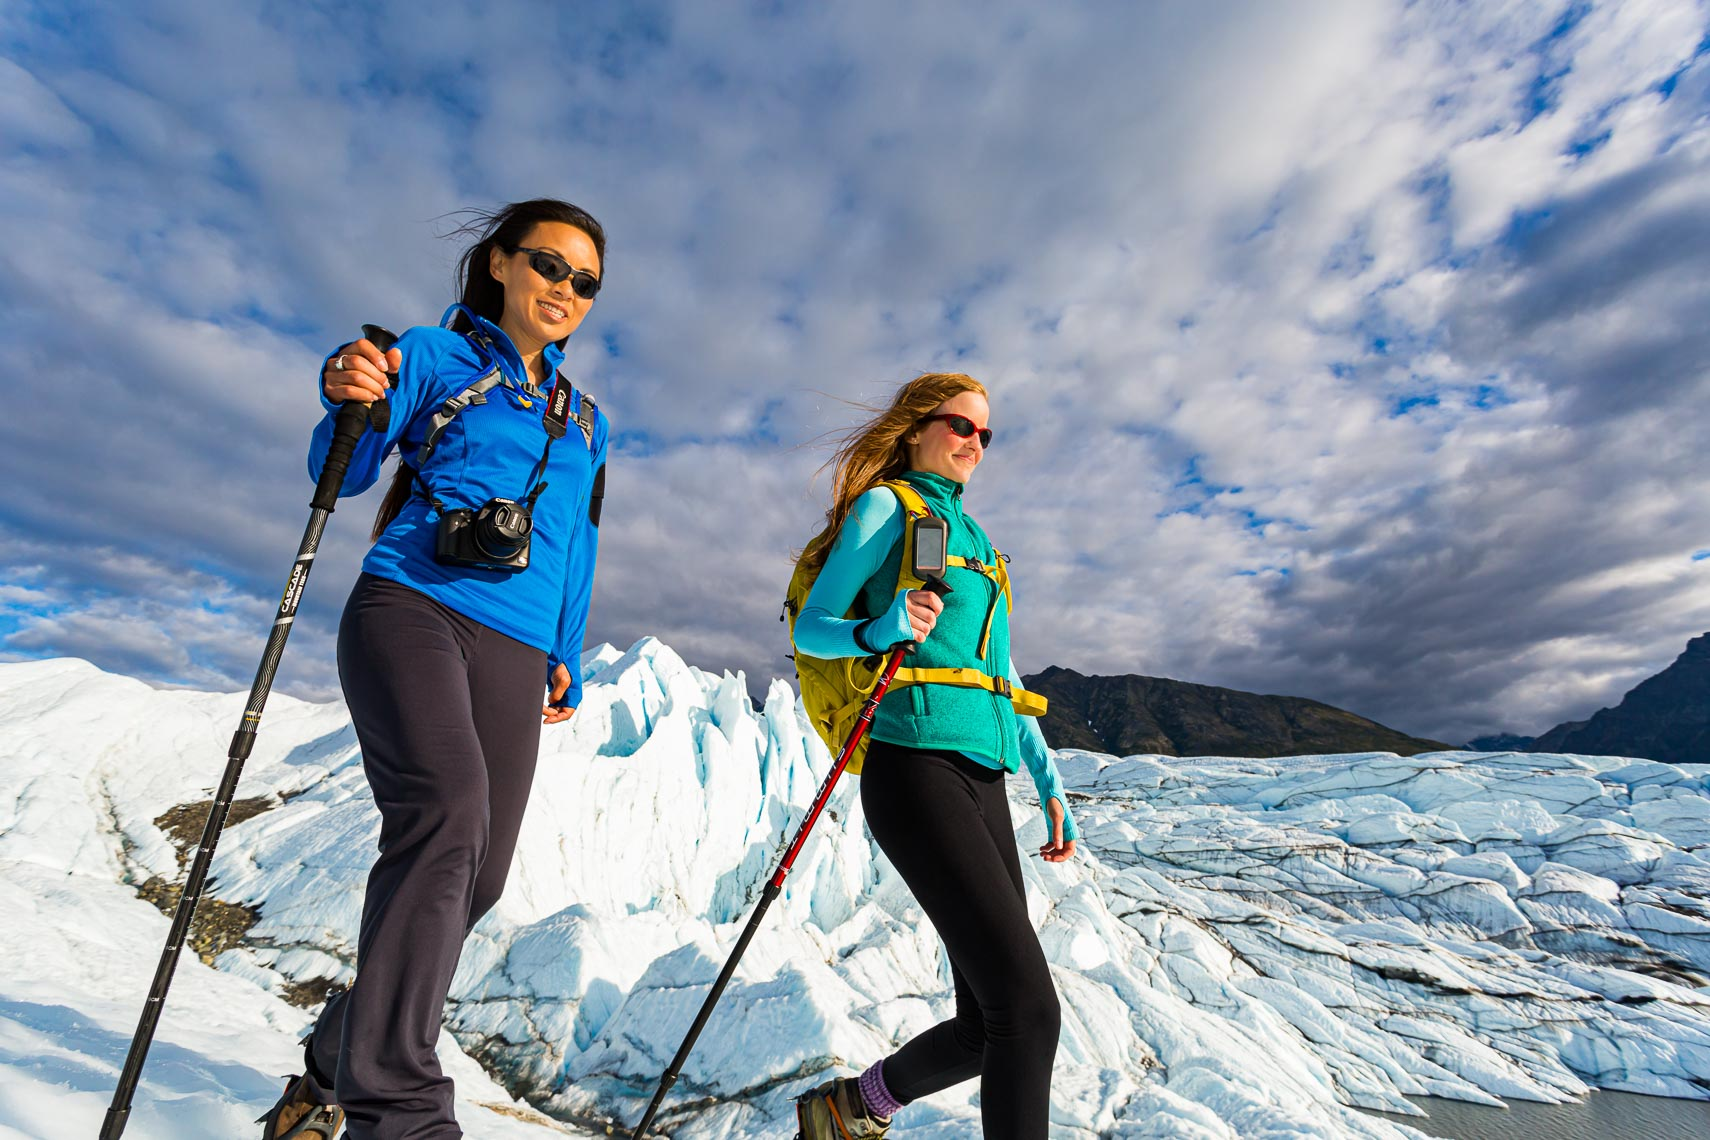 Glacier Tourism Photographer in Alaska | Michael DeYoung